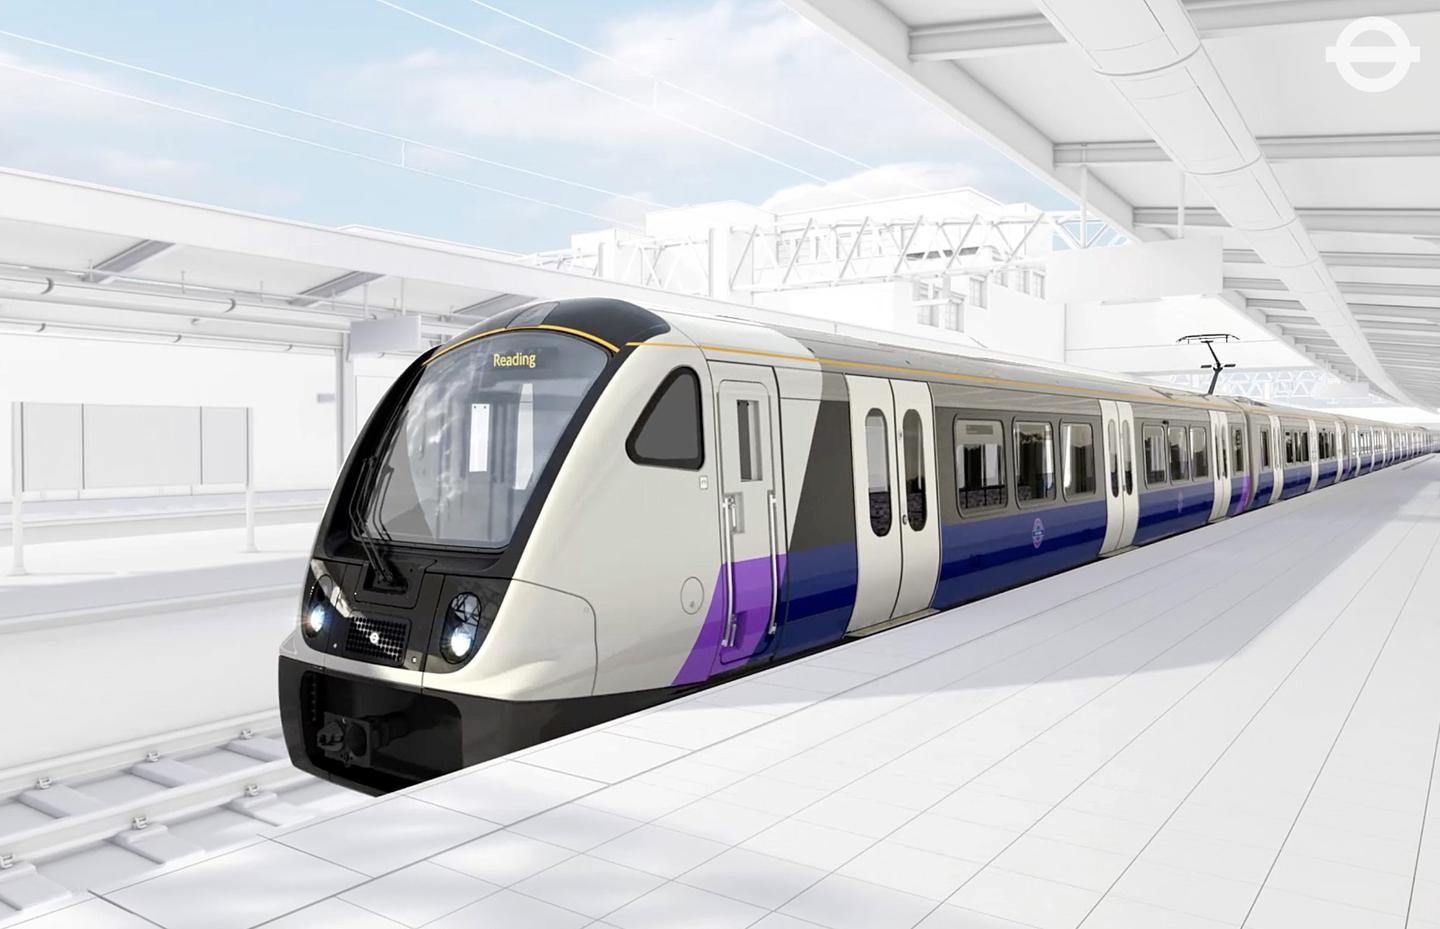 The new Crossrail trains will be 200-m (656-ft) long and will accommodate up to 1,500 passengers